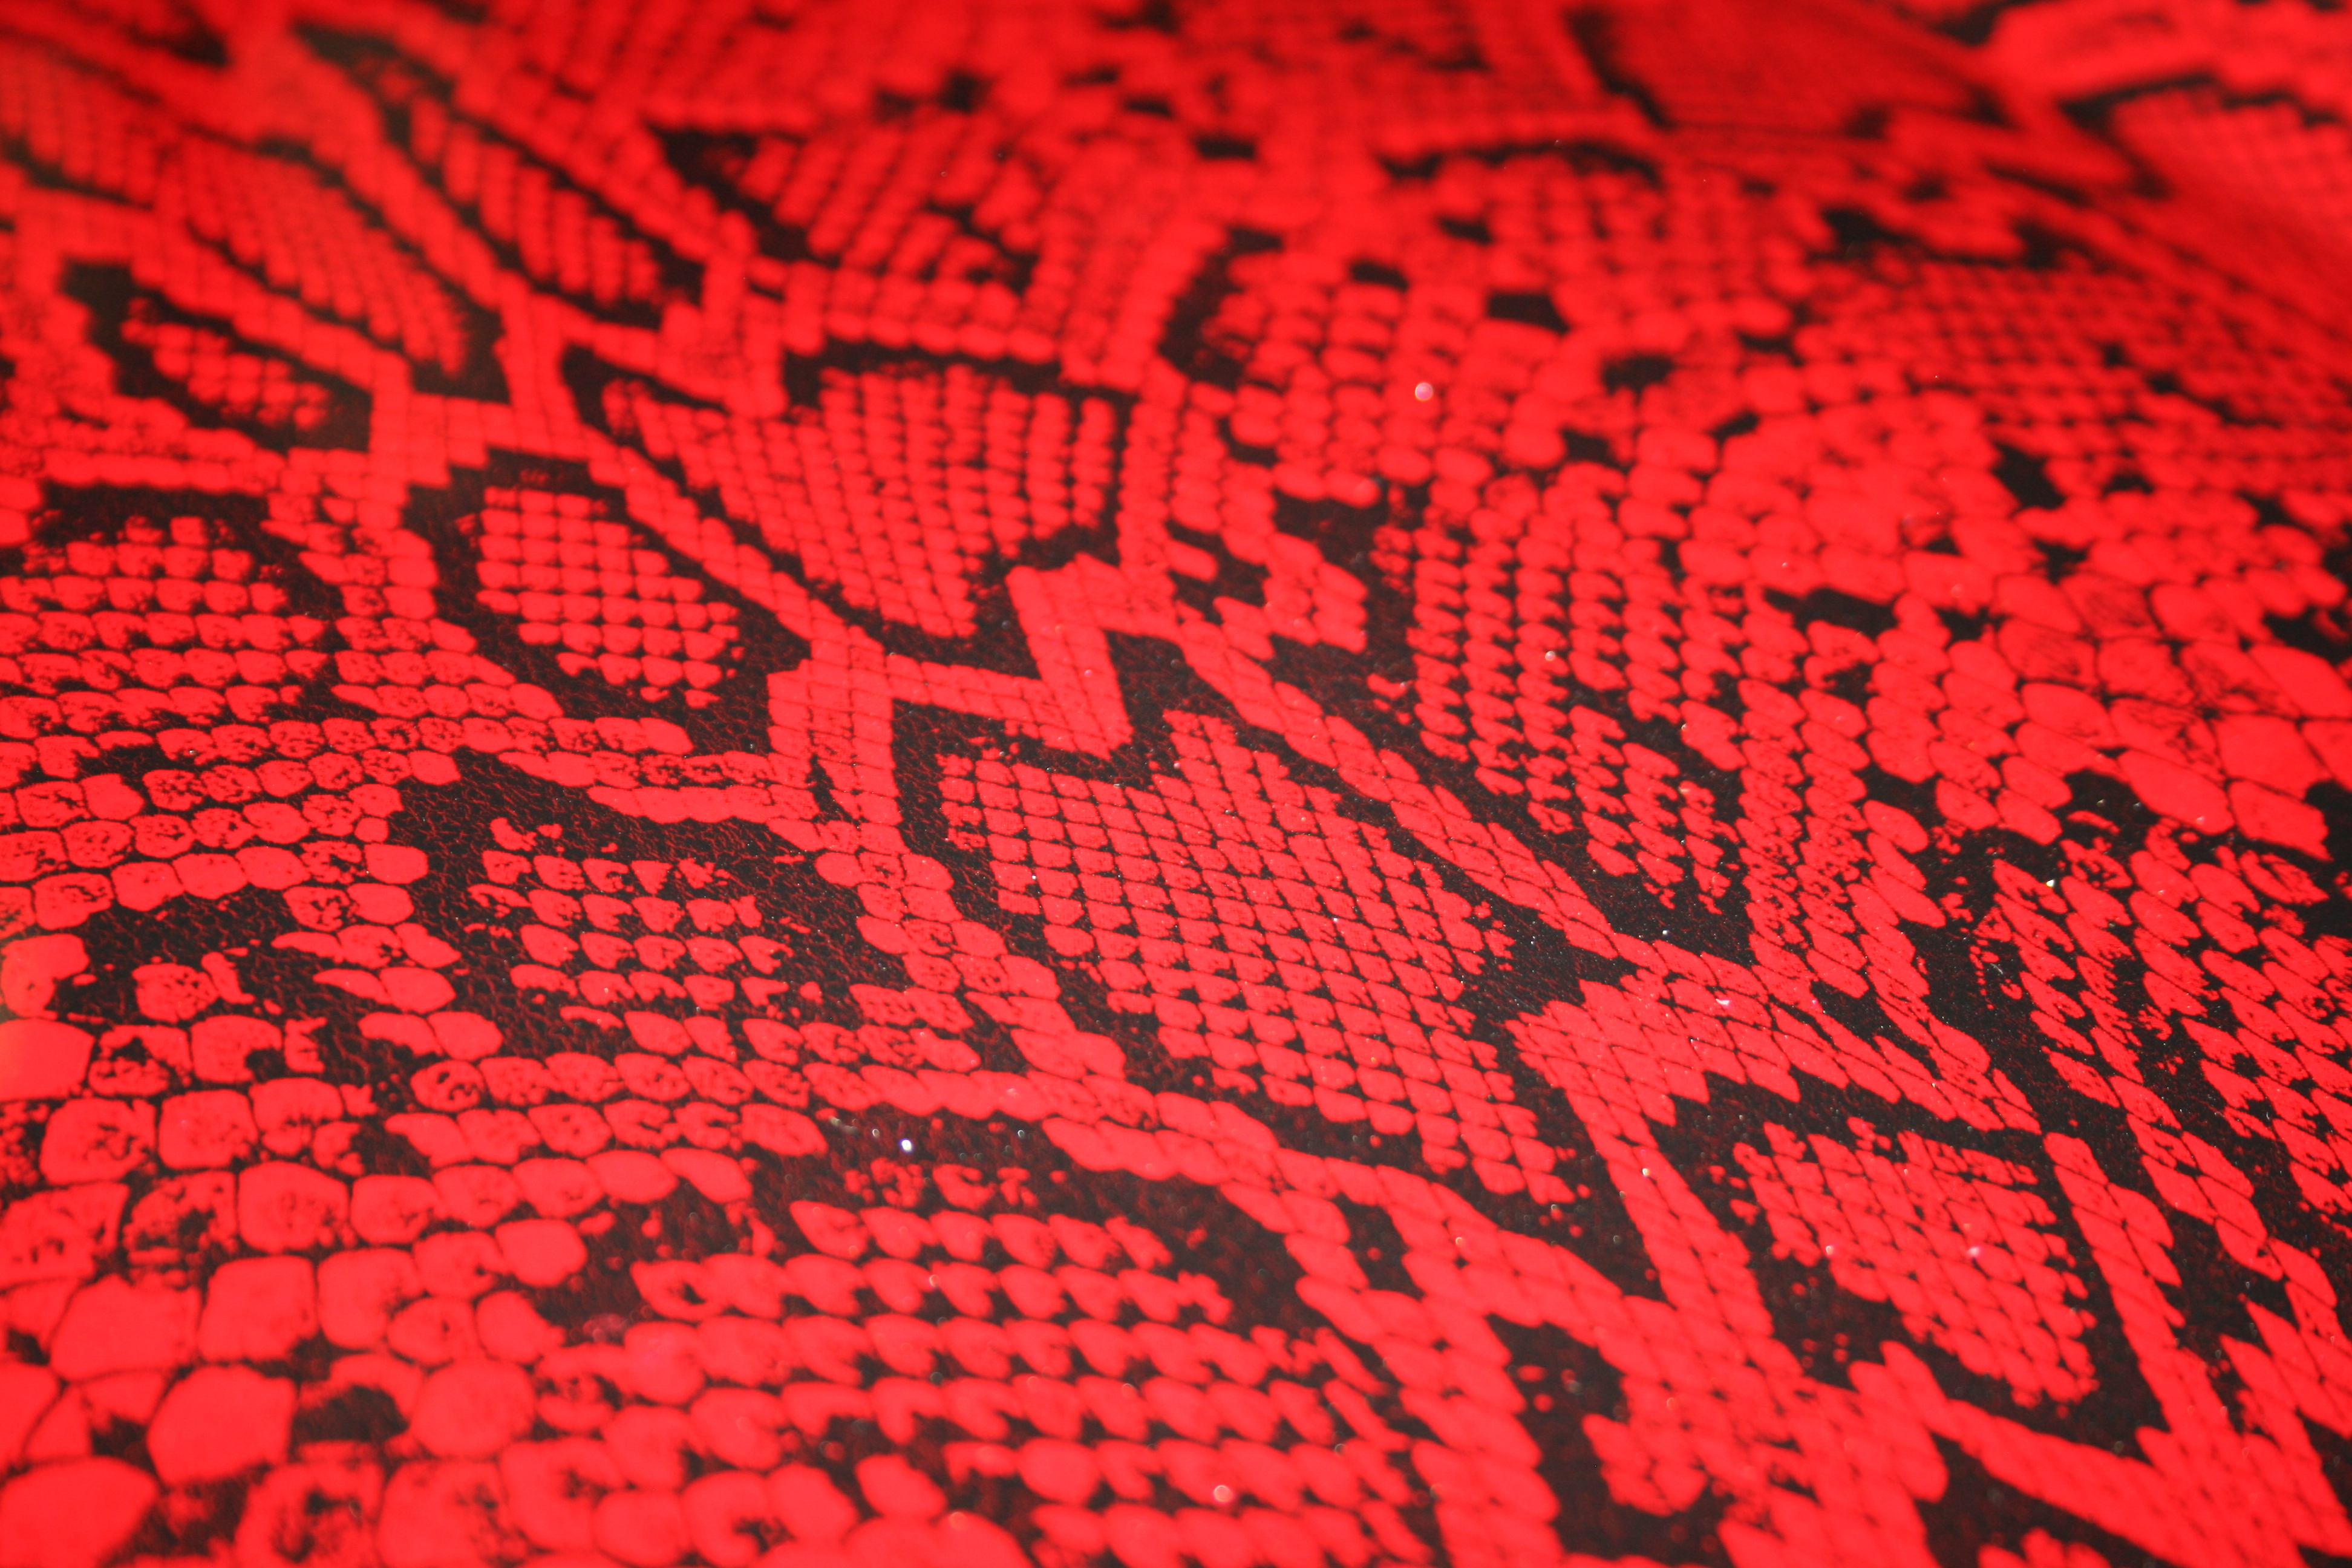 Coral Pattern Red Snake Skin Azhydrographics Com